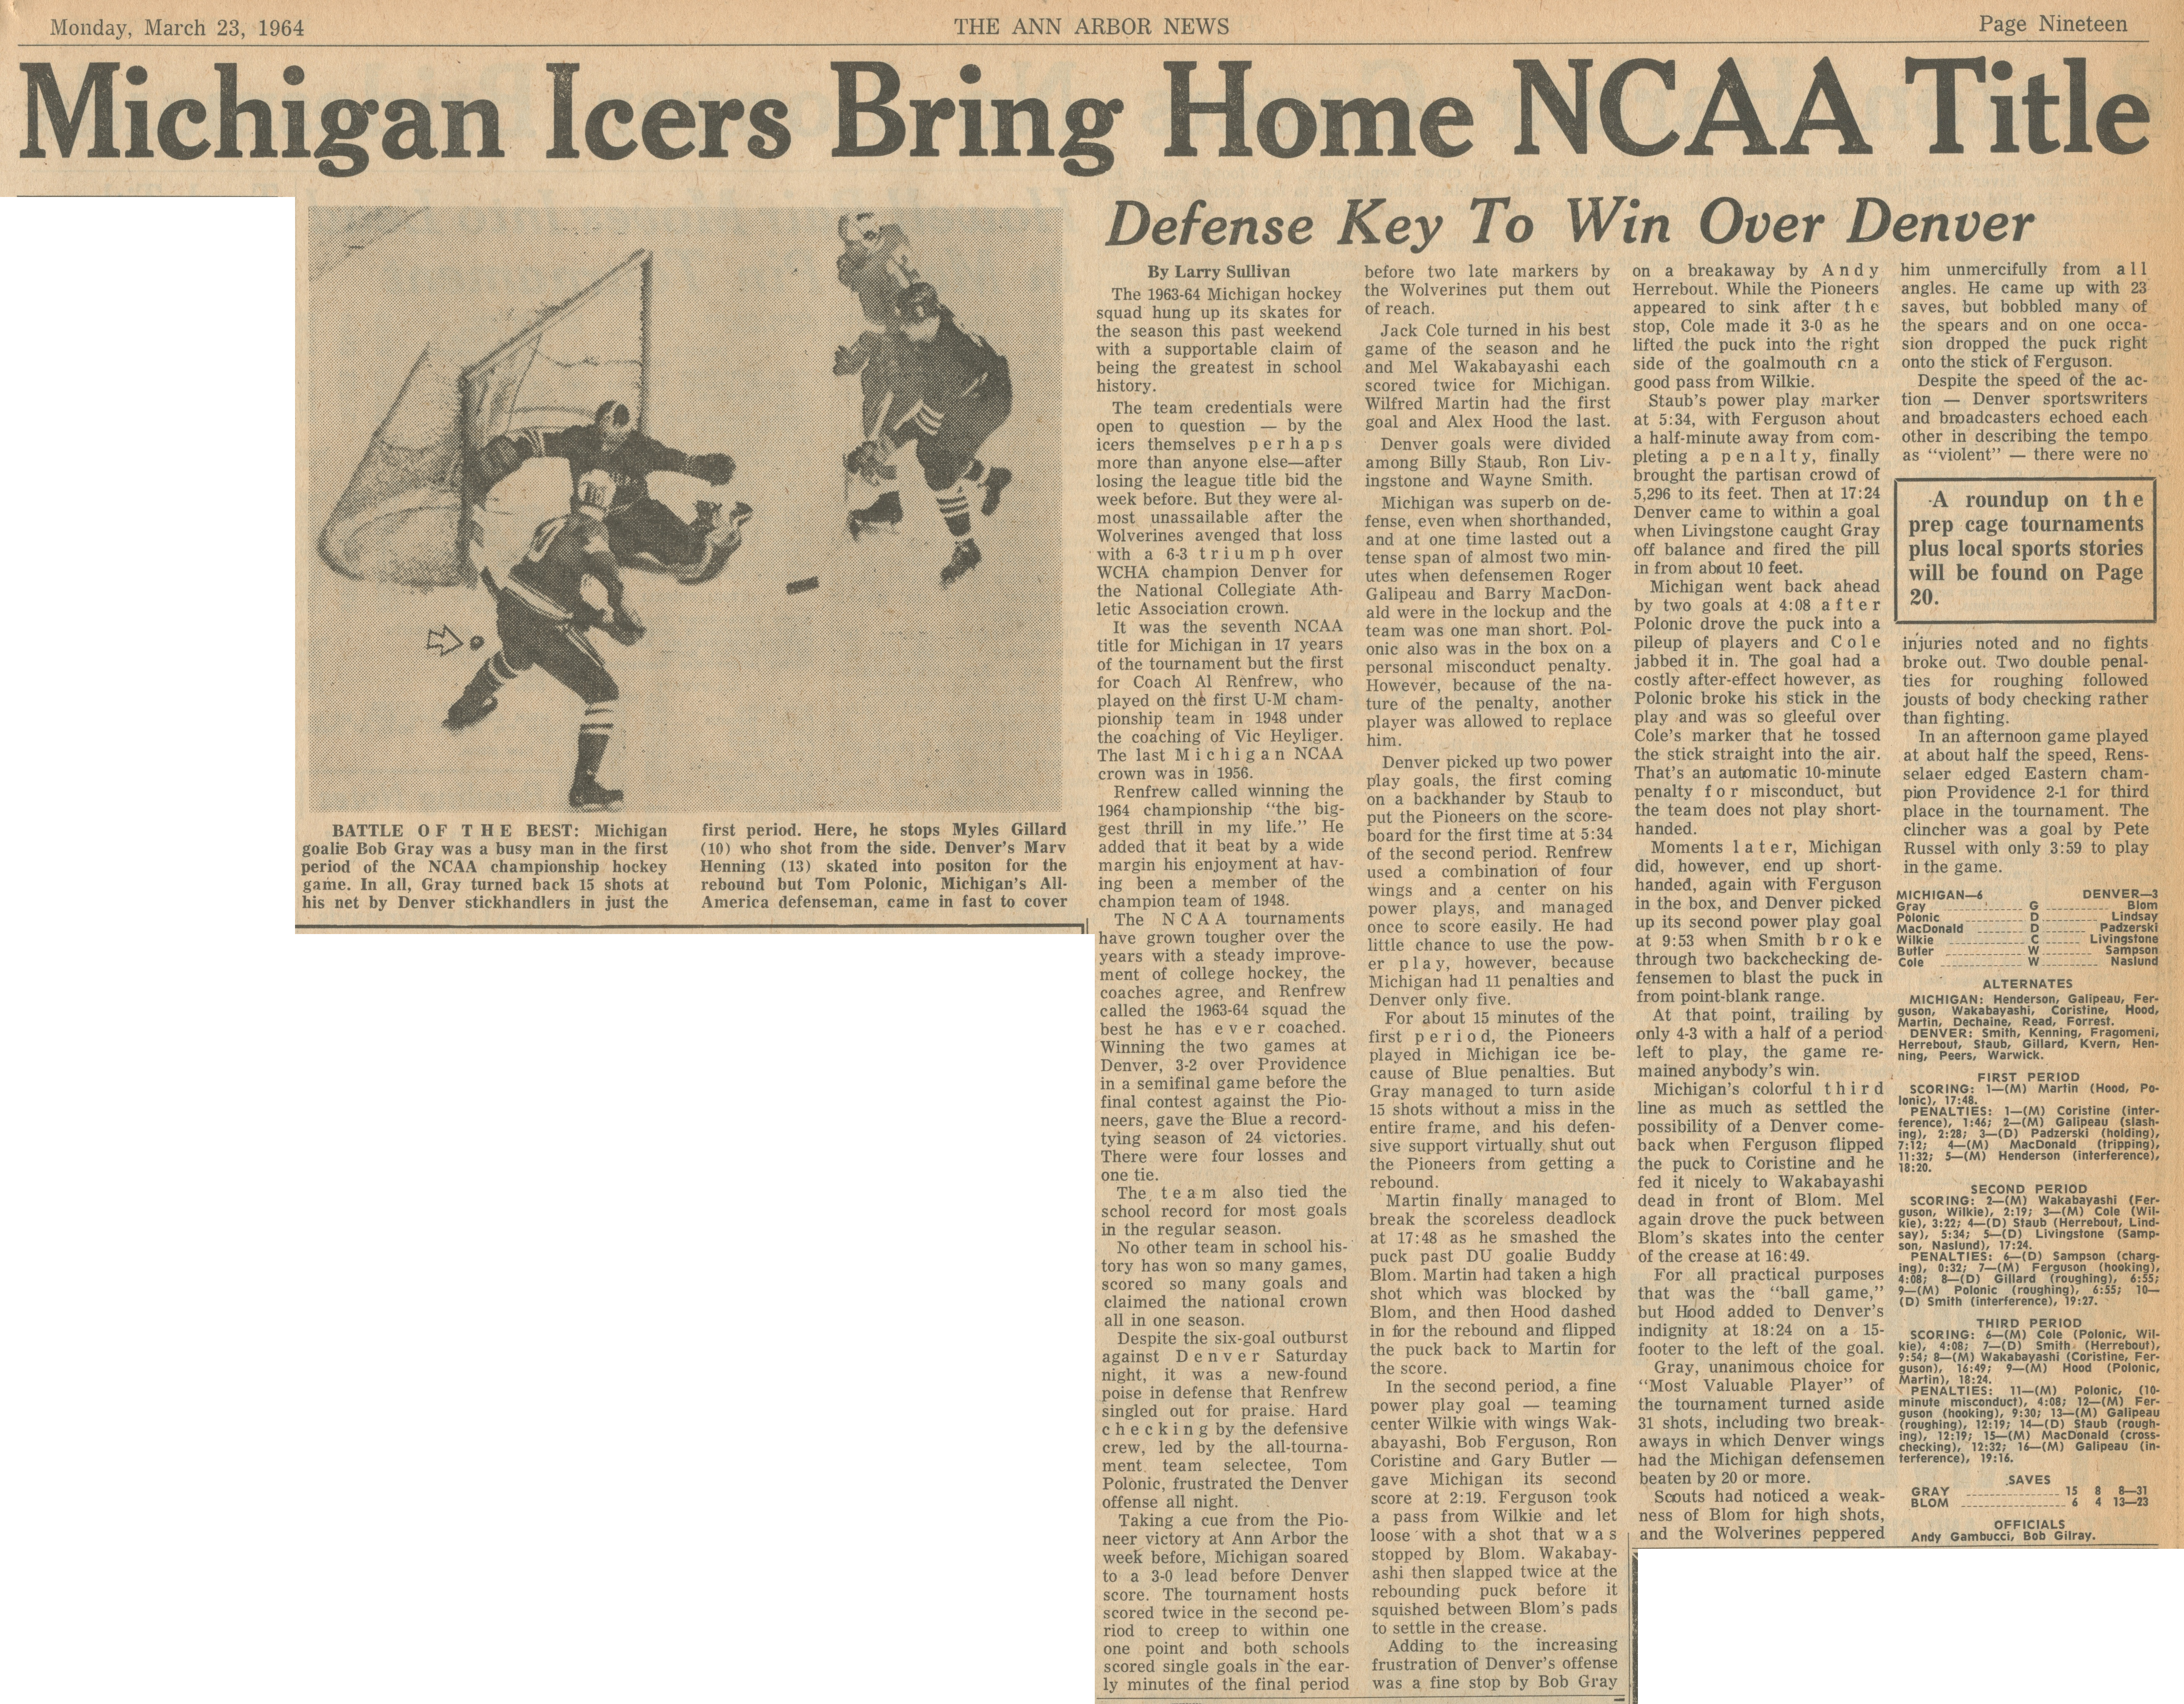 Michigan Icers Bring Home NCAA Title image